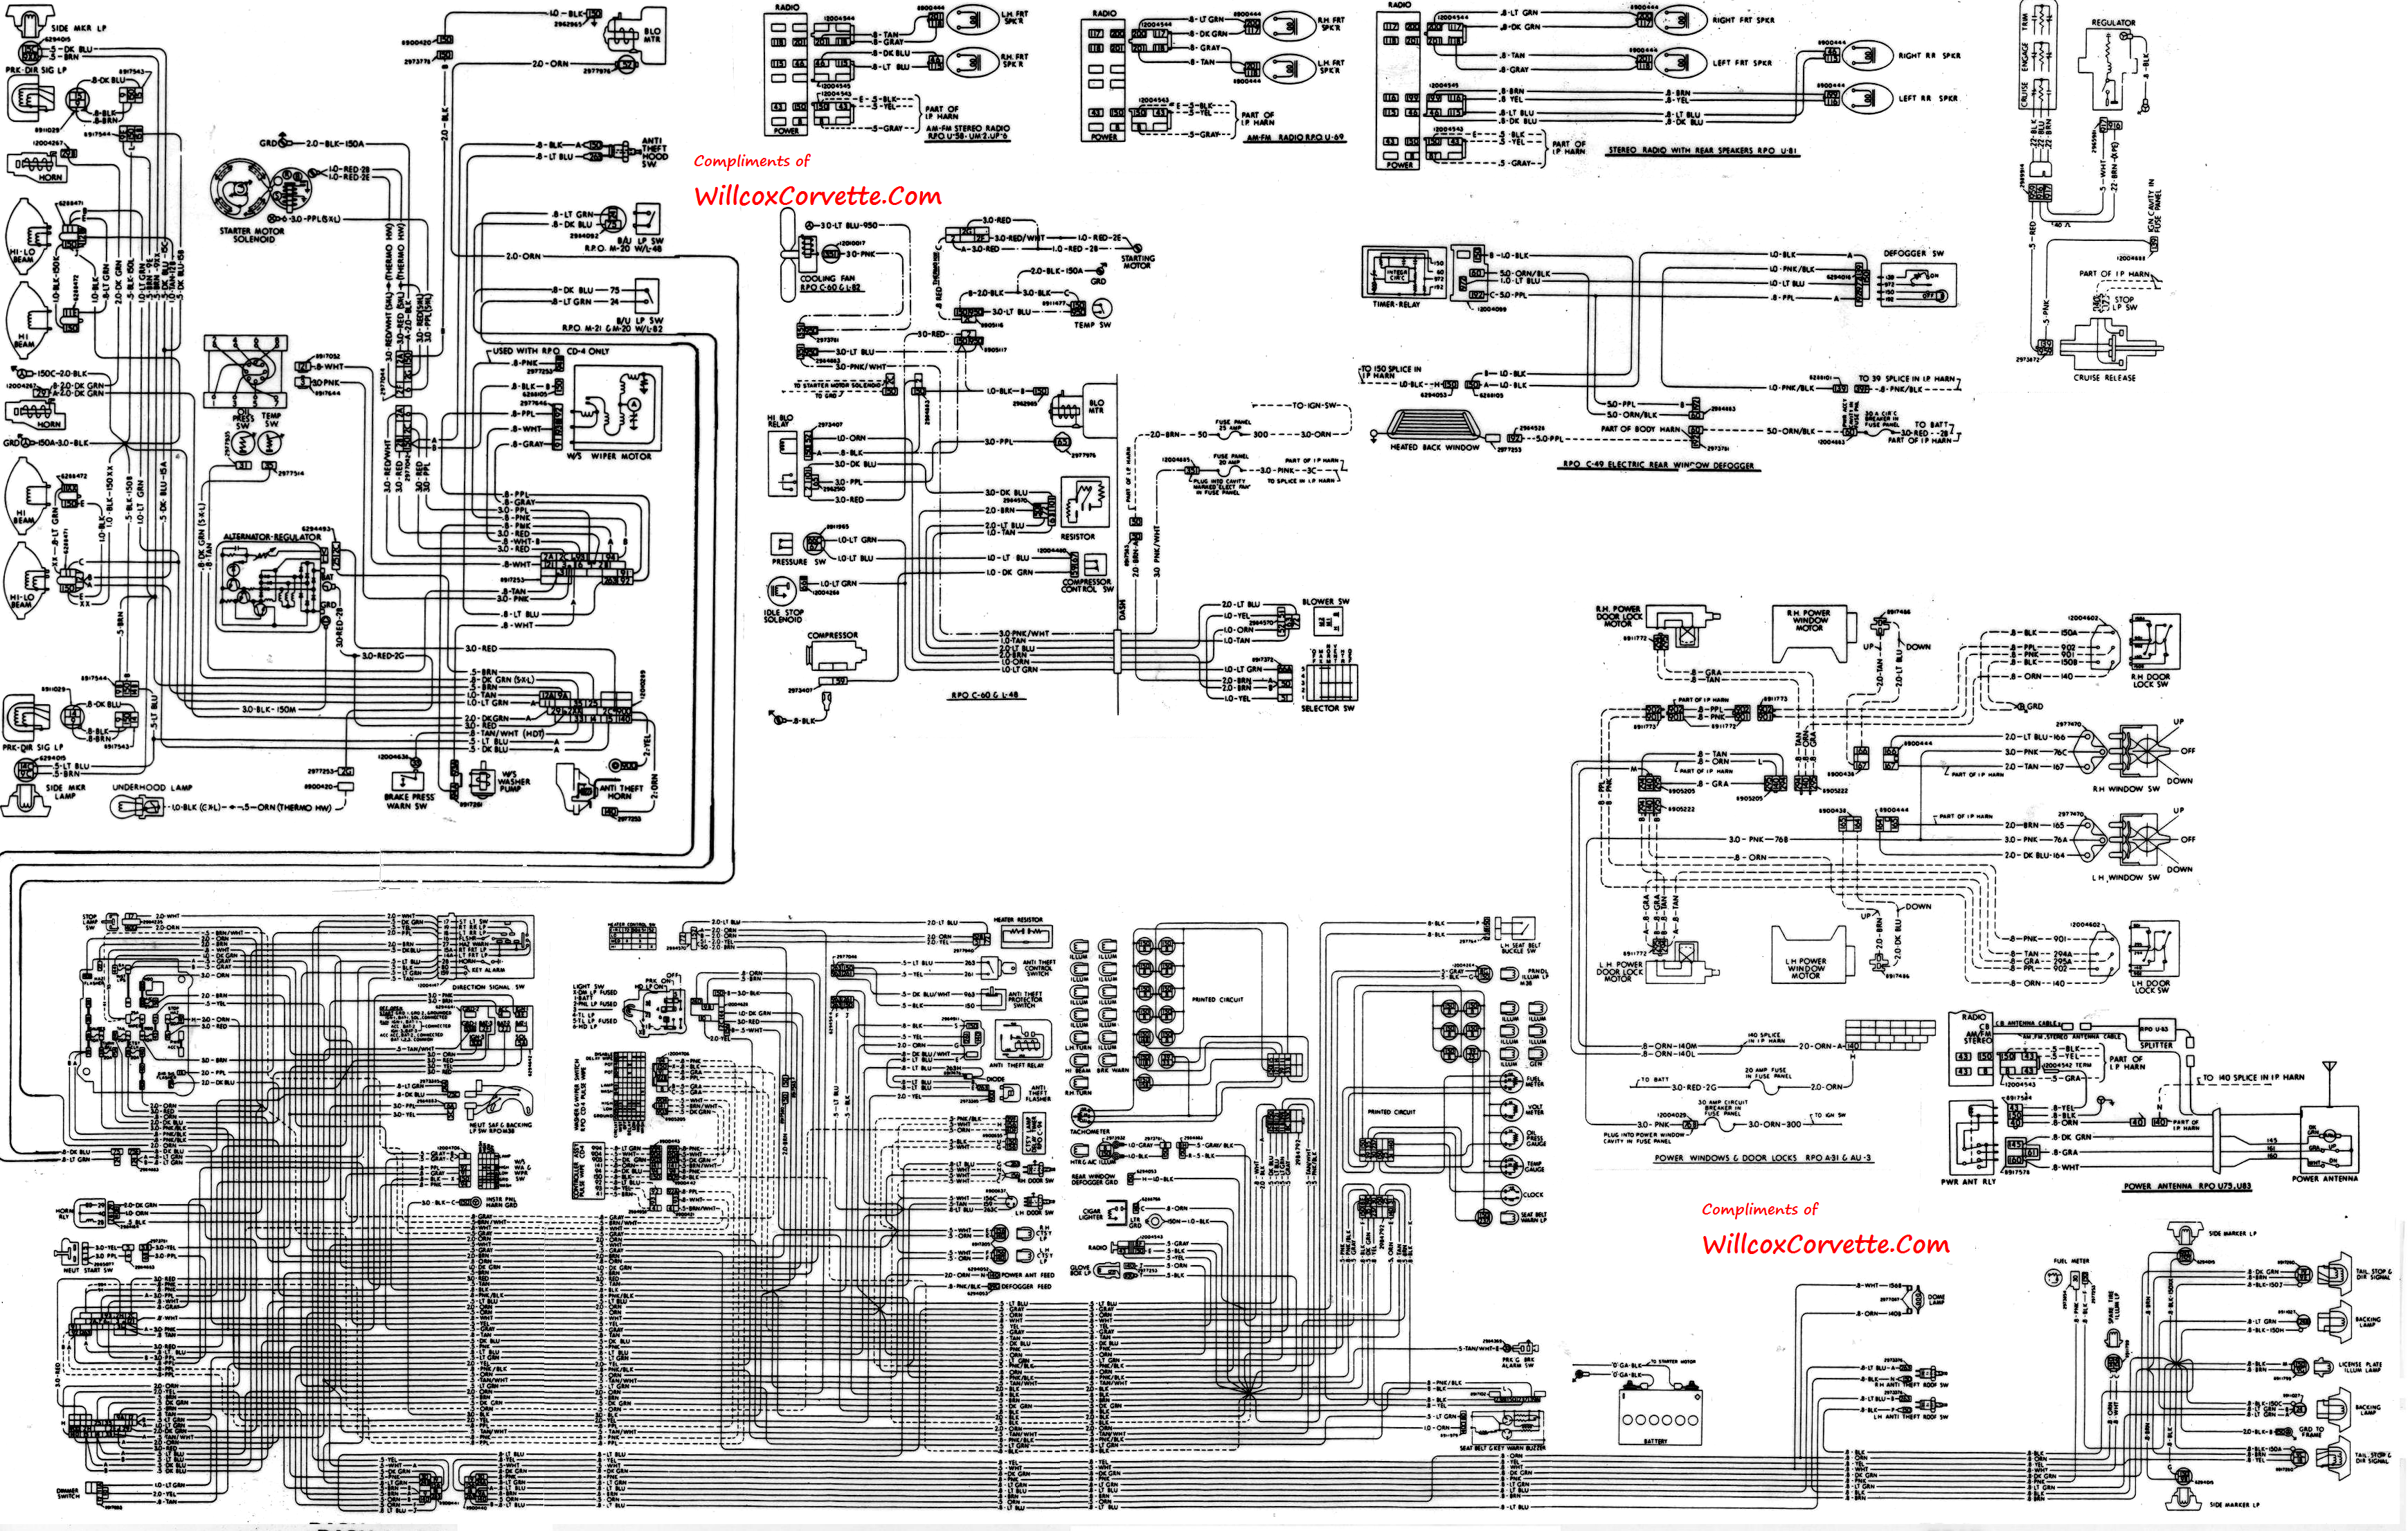 1979 wire diagram 1979 corvette tracer wiring diagram tracer schematic willcox 72 corvette wiring diagram at edmiracle.co